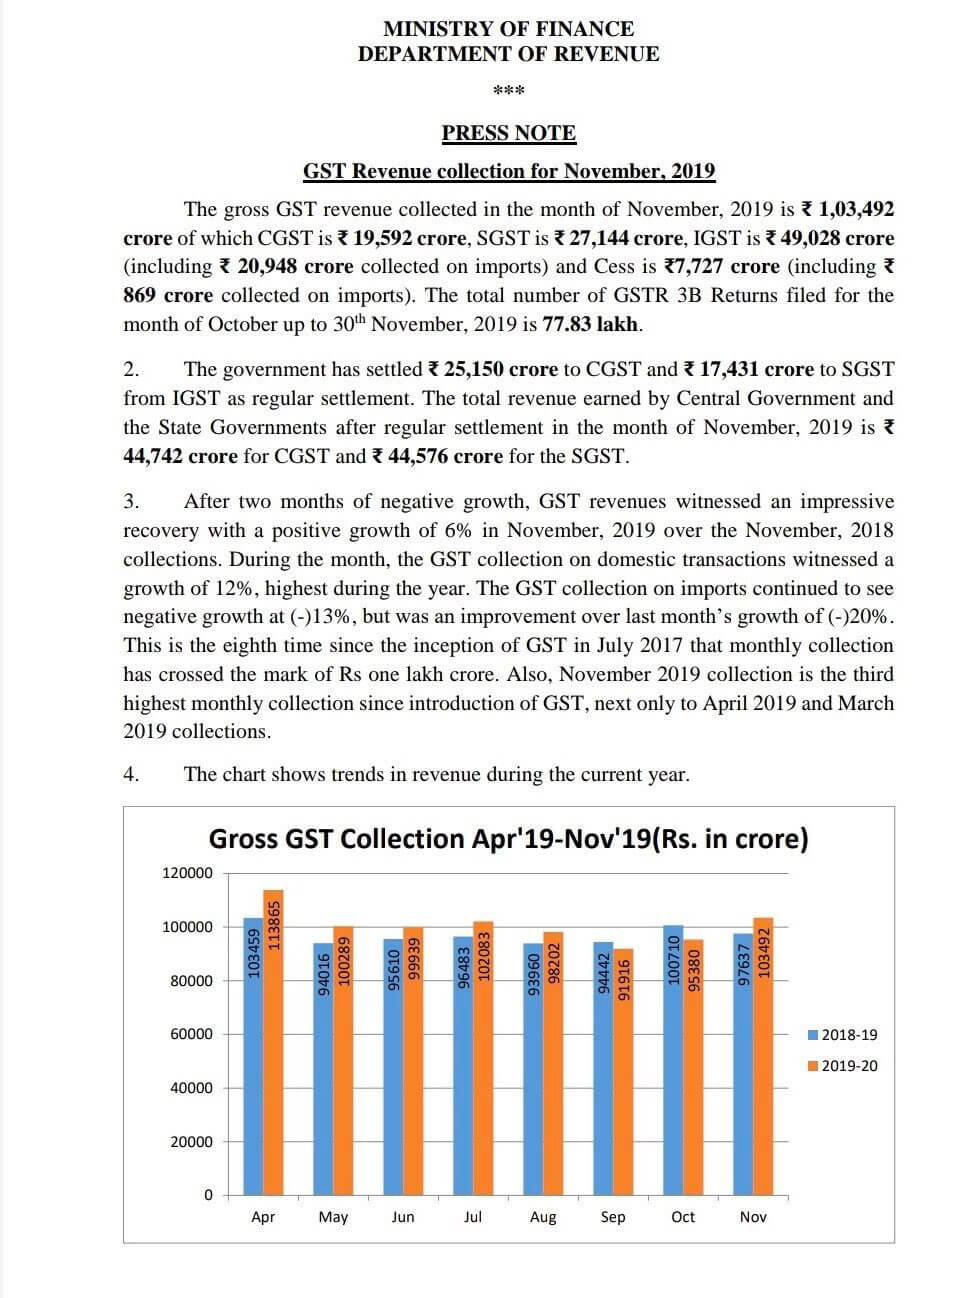 Ministry of Finance Press Note - GST Revenue Collection for November 2019